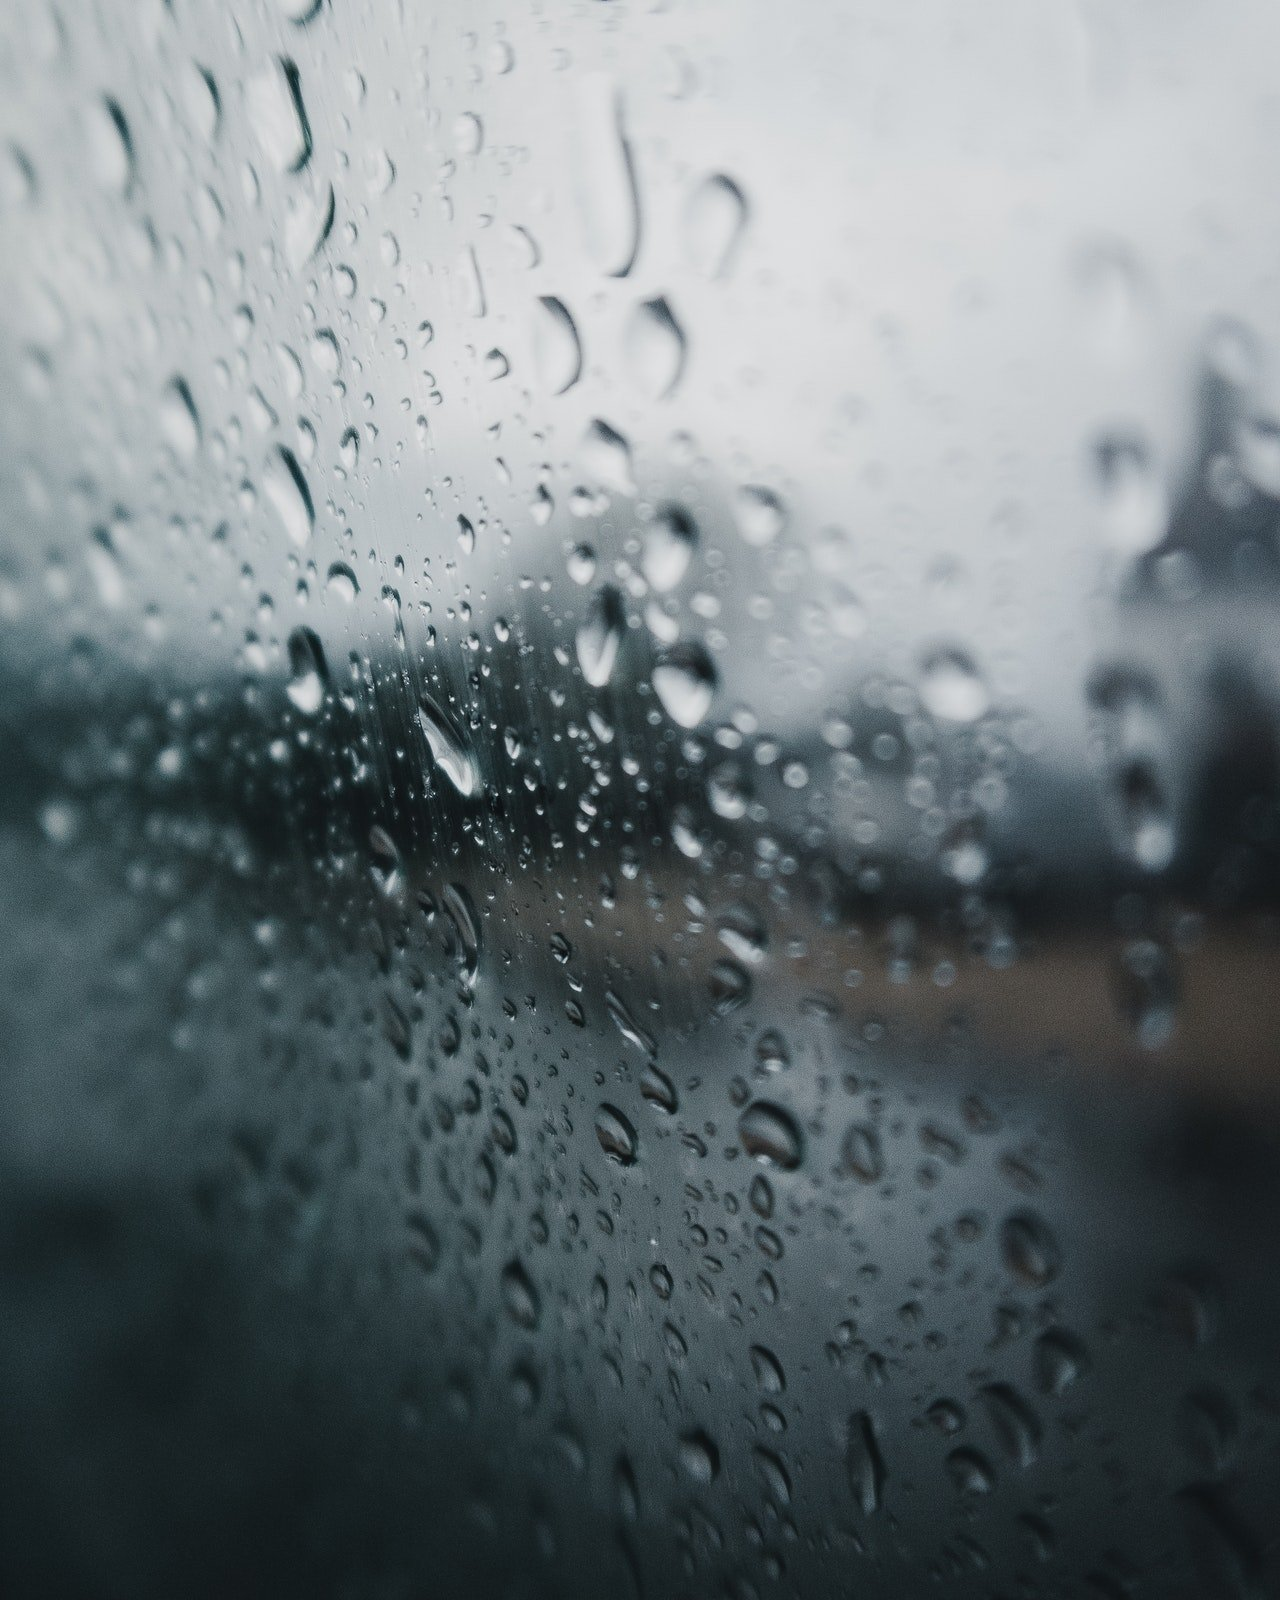 Photo of water droplets on a screen | Photo: Pexels